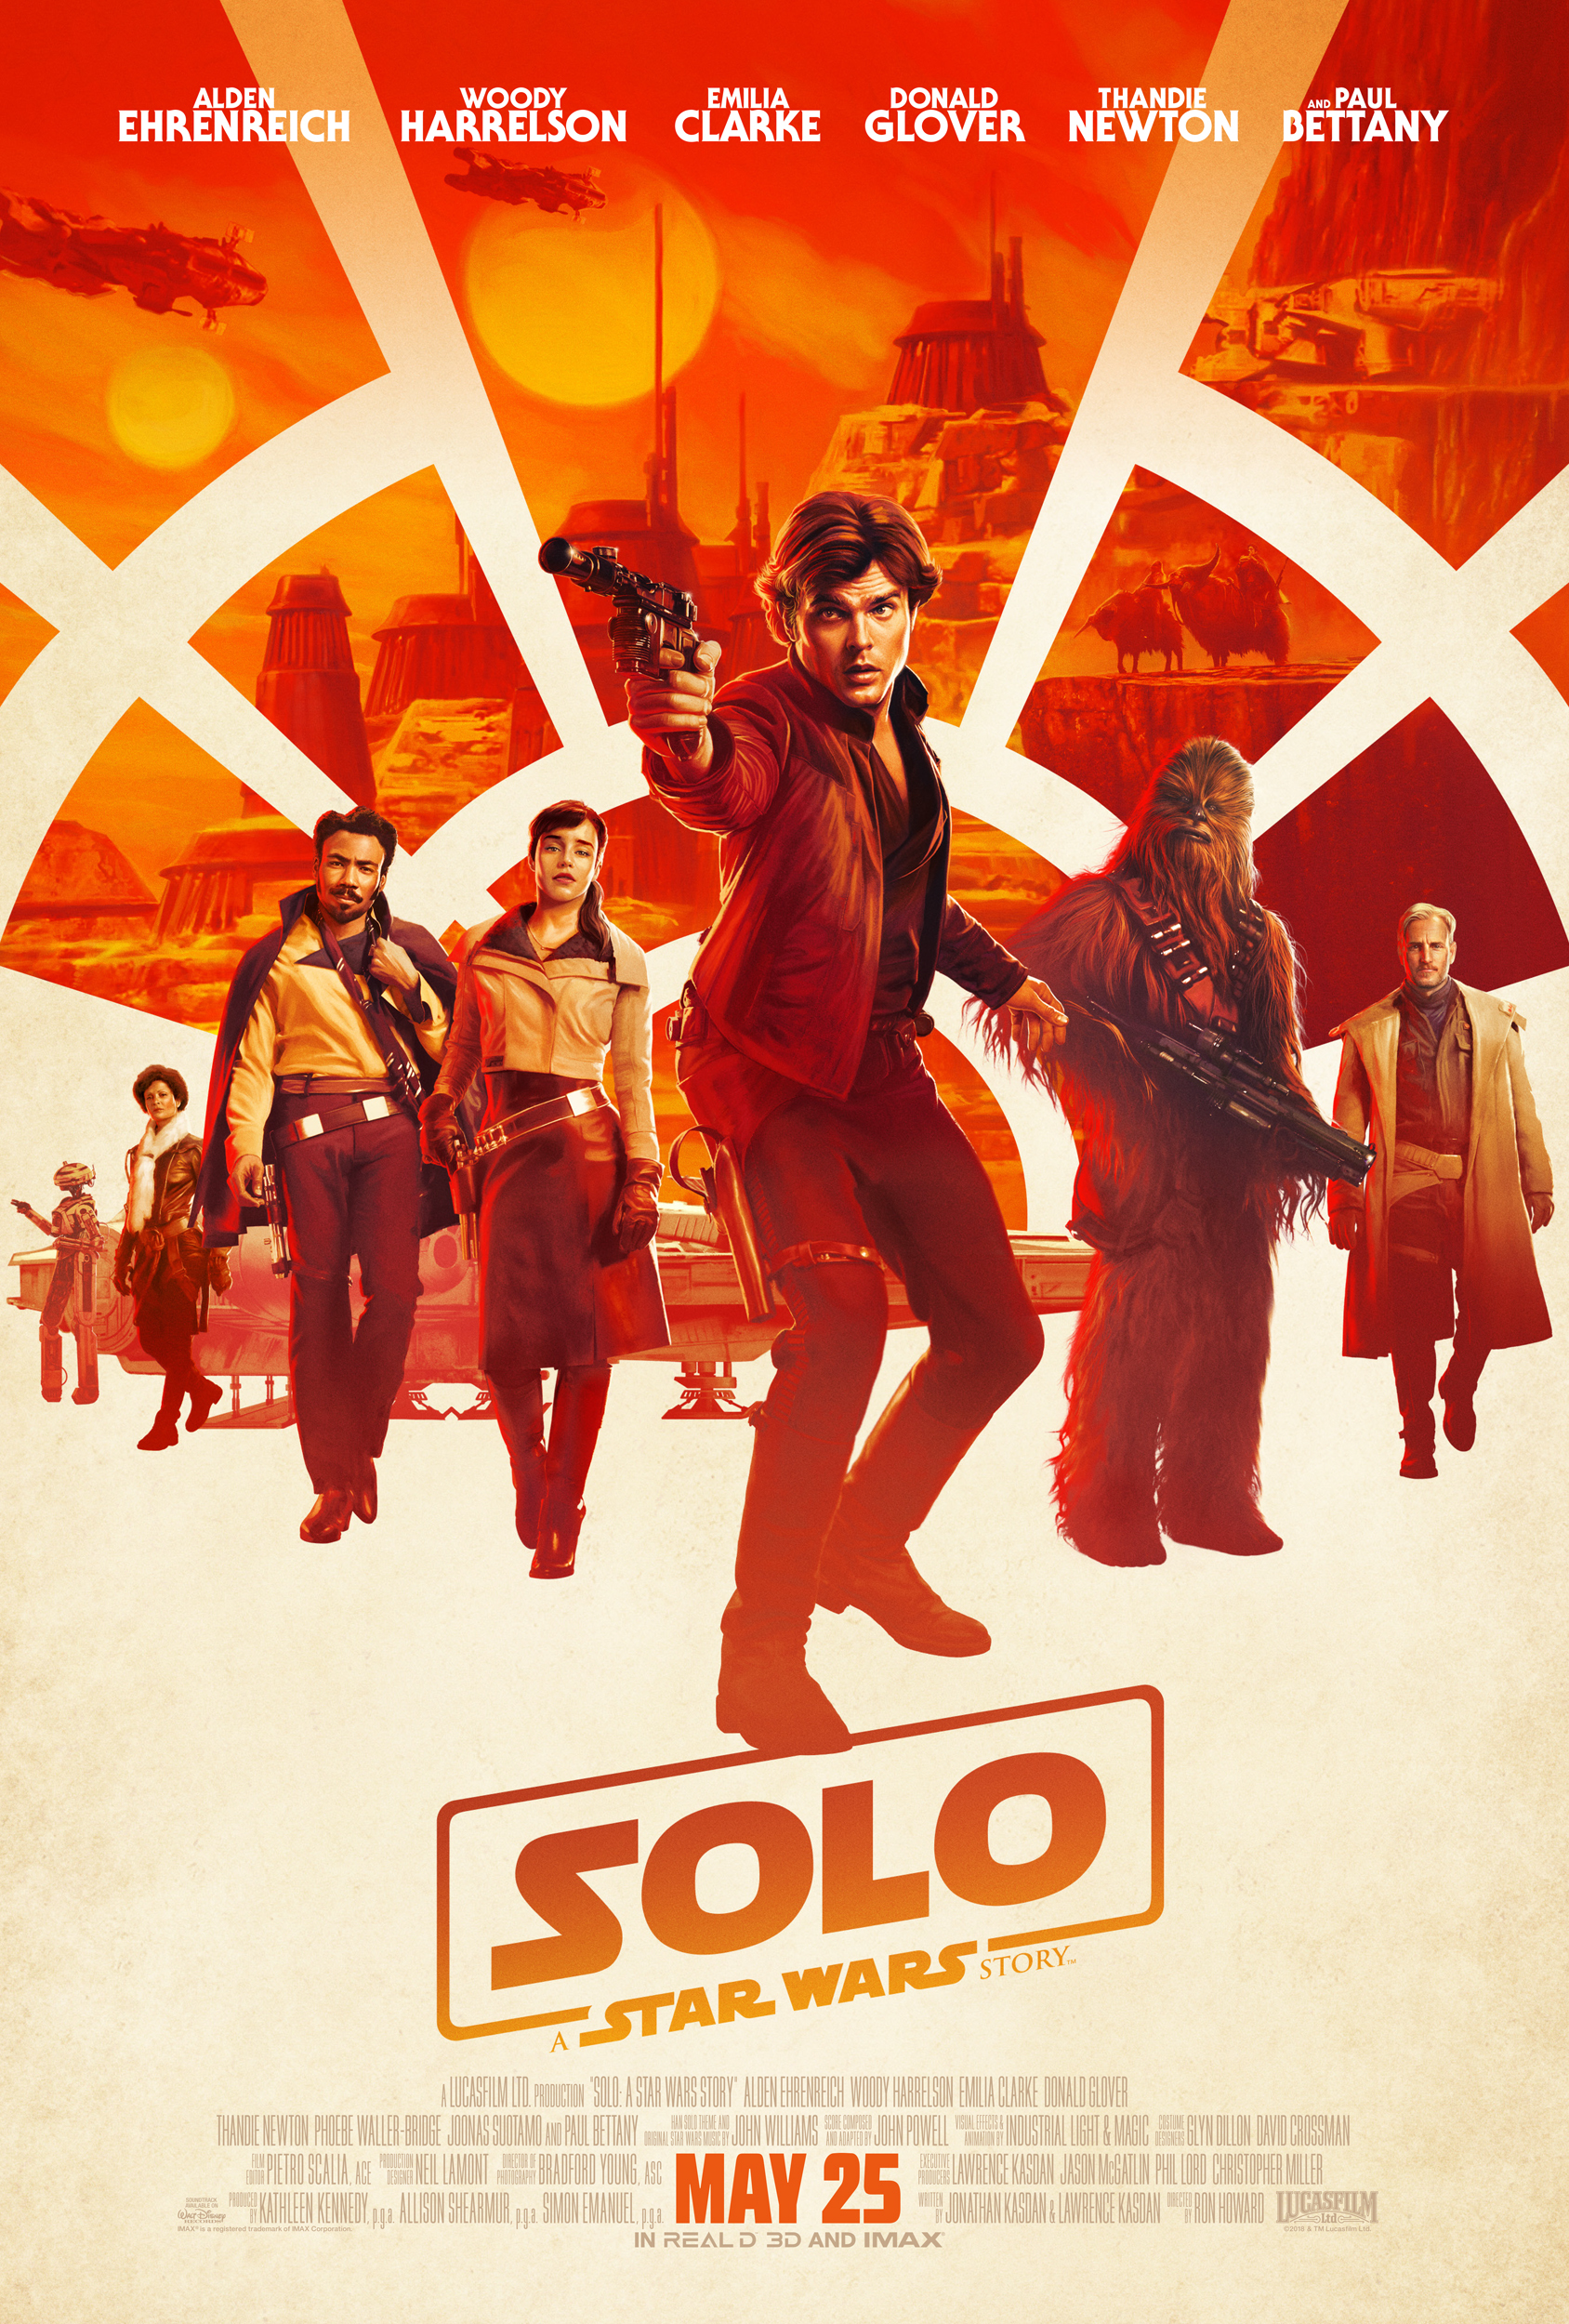 Solo: A Star Wars Story   (2018) dir. Ron Howard Rated: PG-13 image:©2018  Walt Disney Studios Motion Pictures